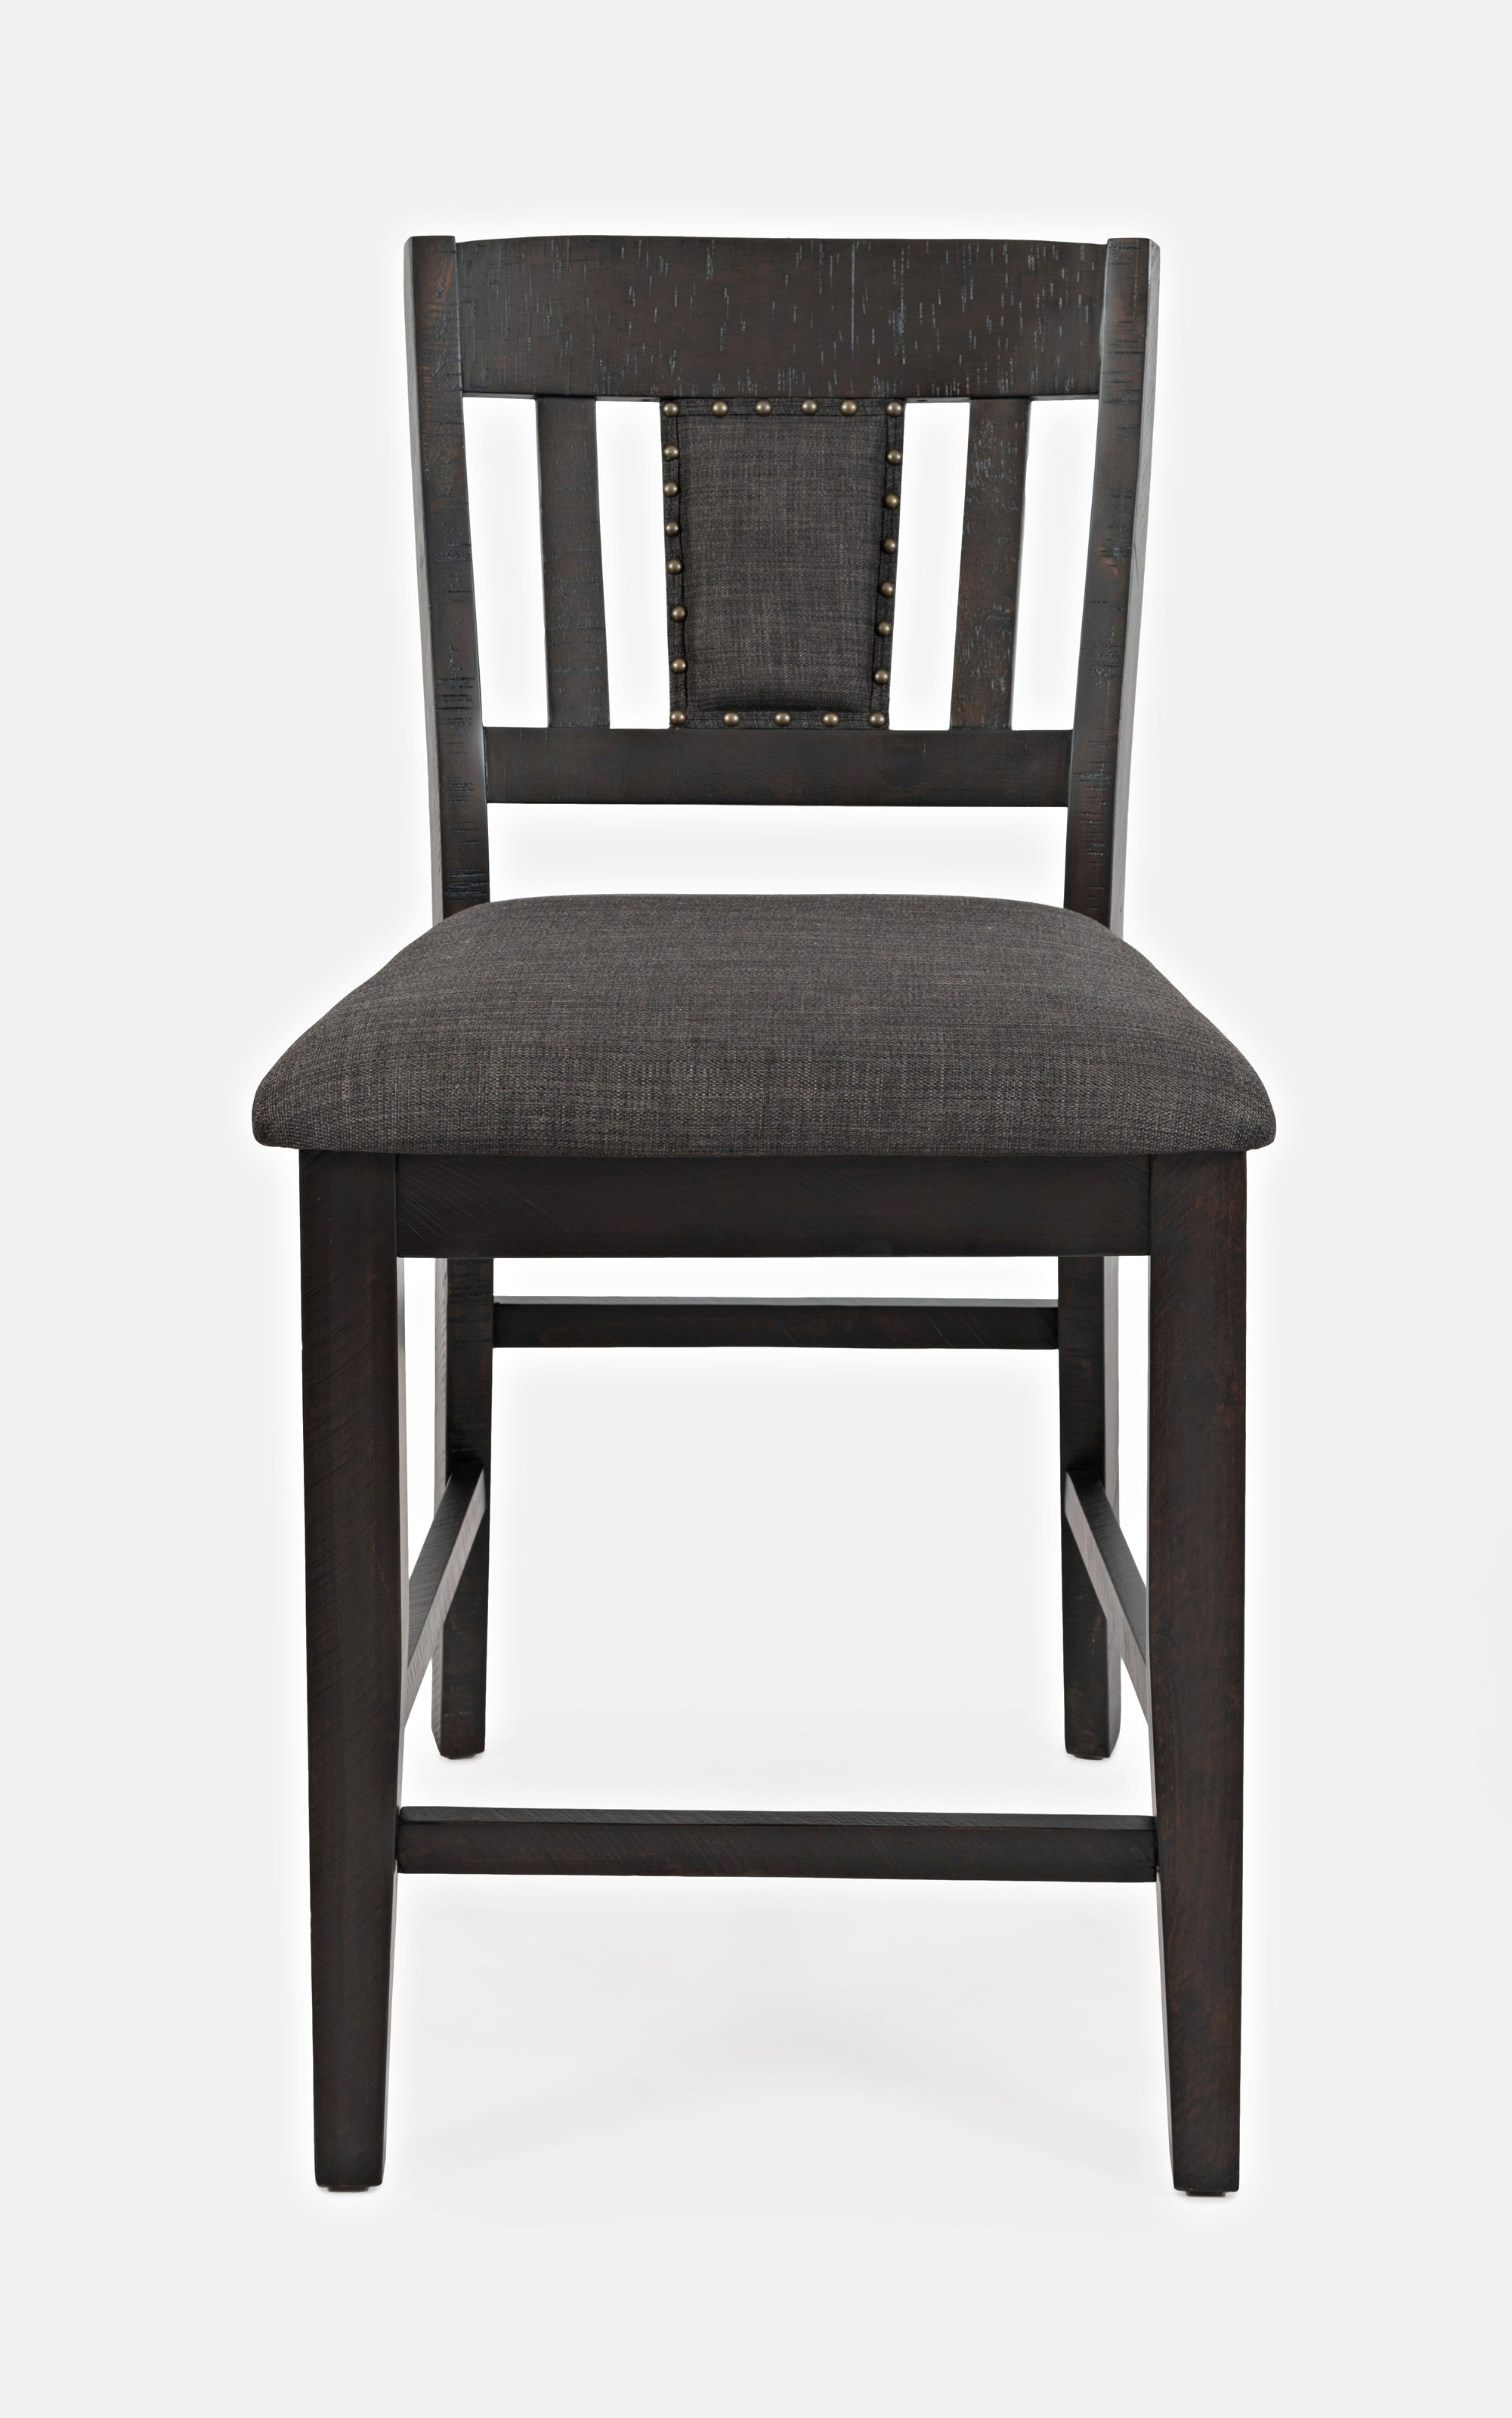 American Rustics Upholstered Slatback Stool by Jofran at H.L. Stephens